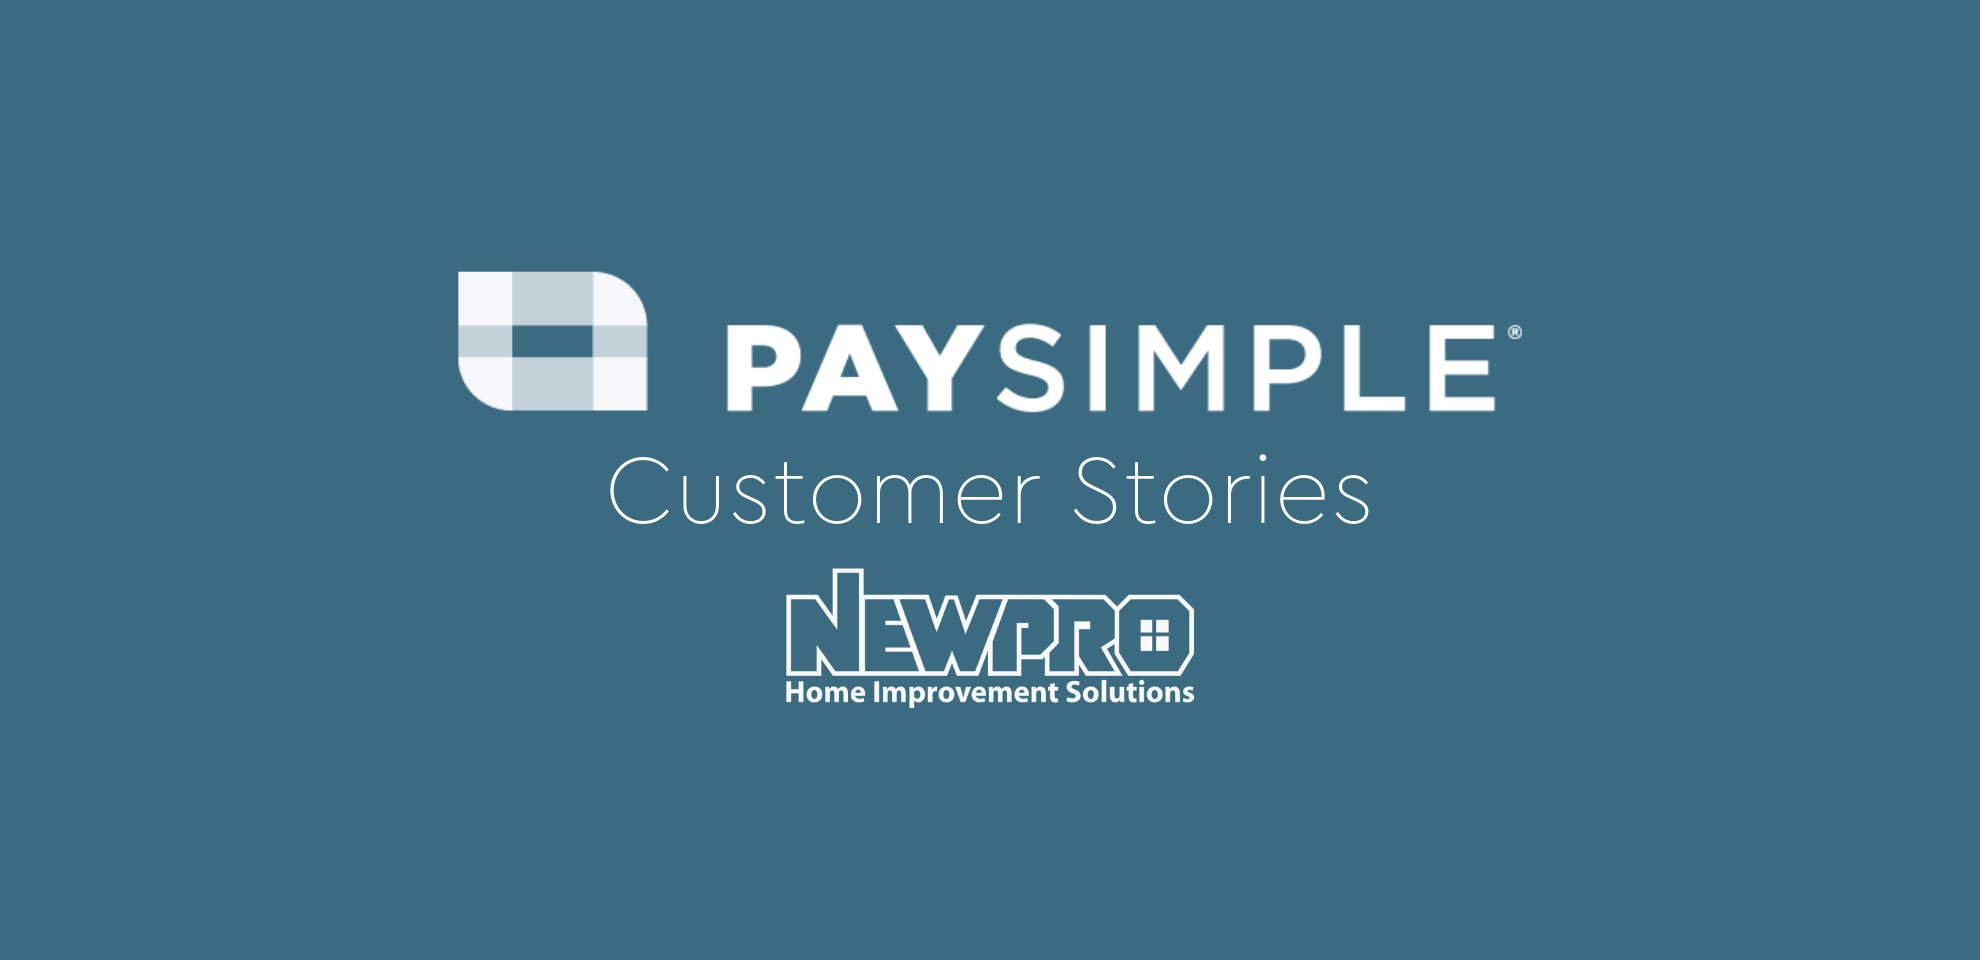 PaySimple + i360: Quick to Profit with Online Mobile Payments for NewPro